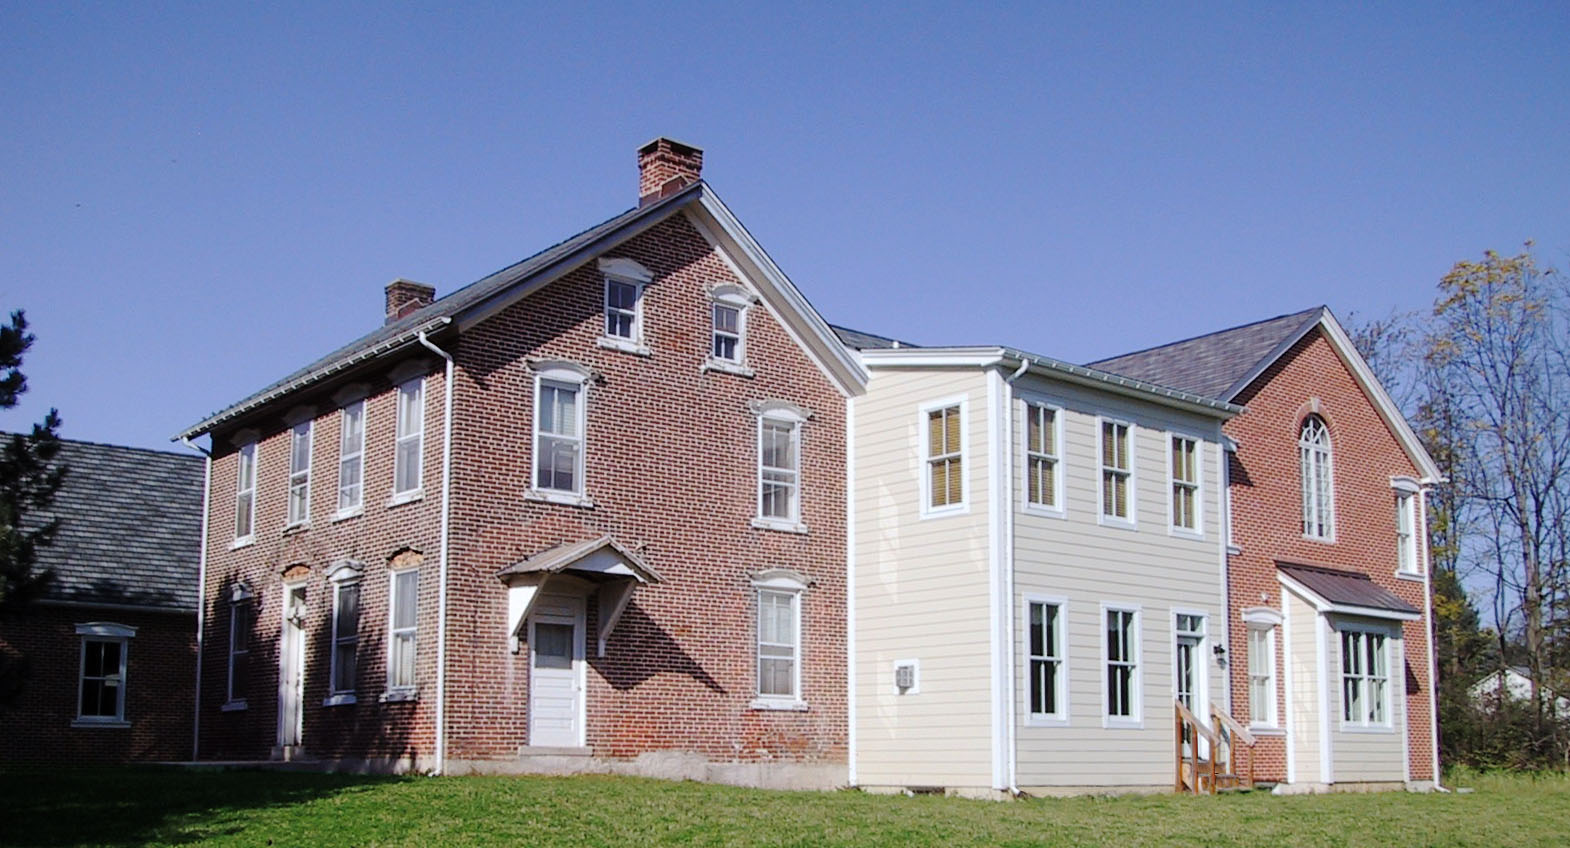 Existing Brick Farmhouse with addition to the right